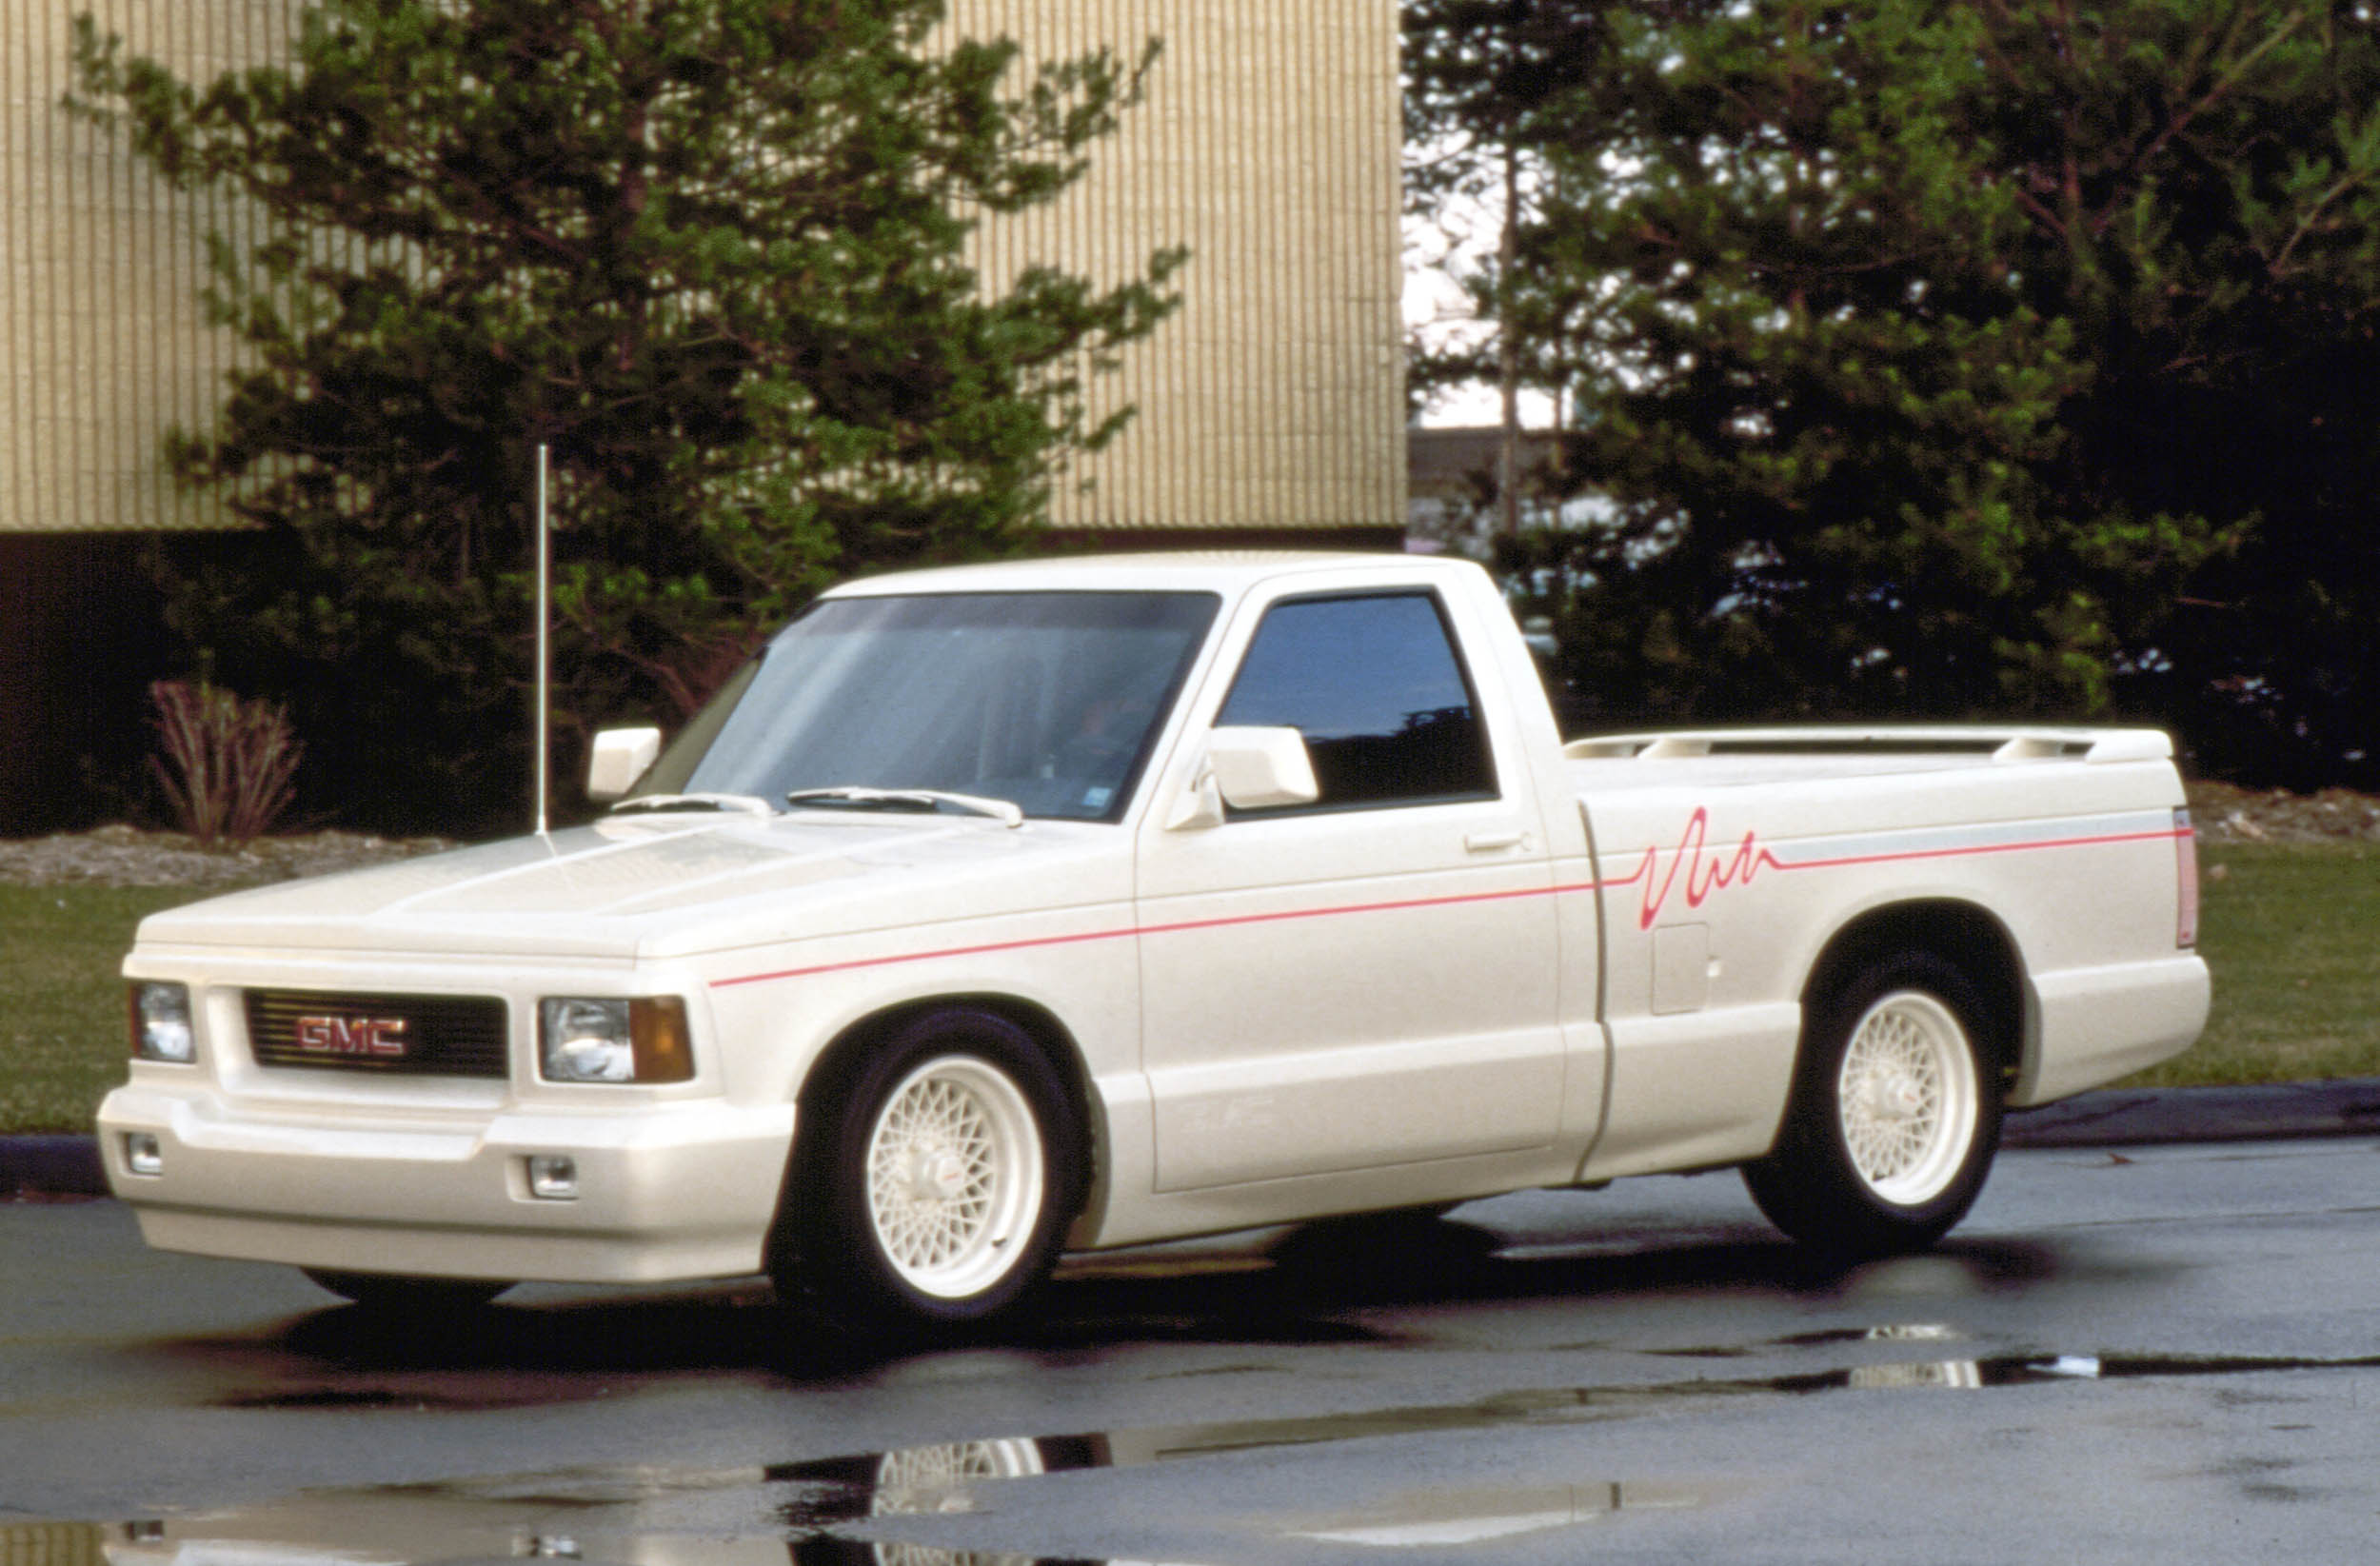 The '90s were in full effect on this 1991 GMC Sonoma Syclone design proposal even if the production Syclone was only available in black. There was quite probably a Sweetheart wax paper cup dispenser somewhere in or near the design building.